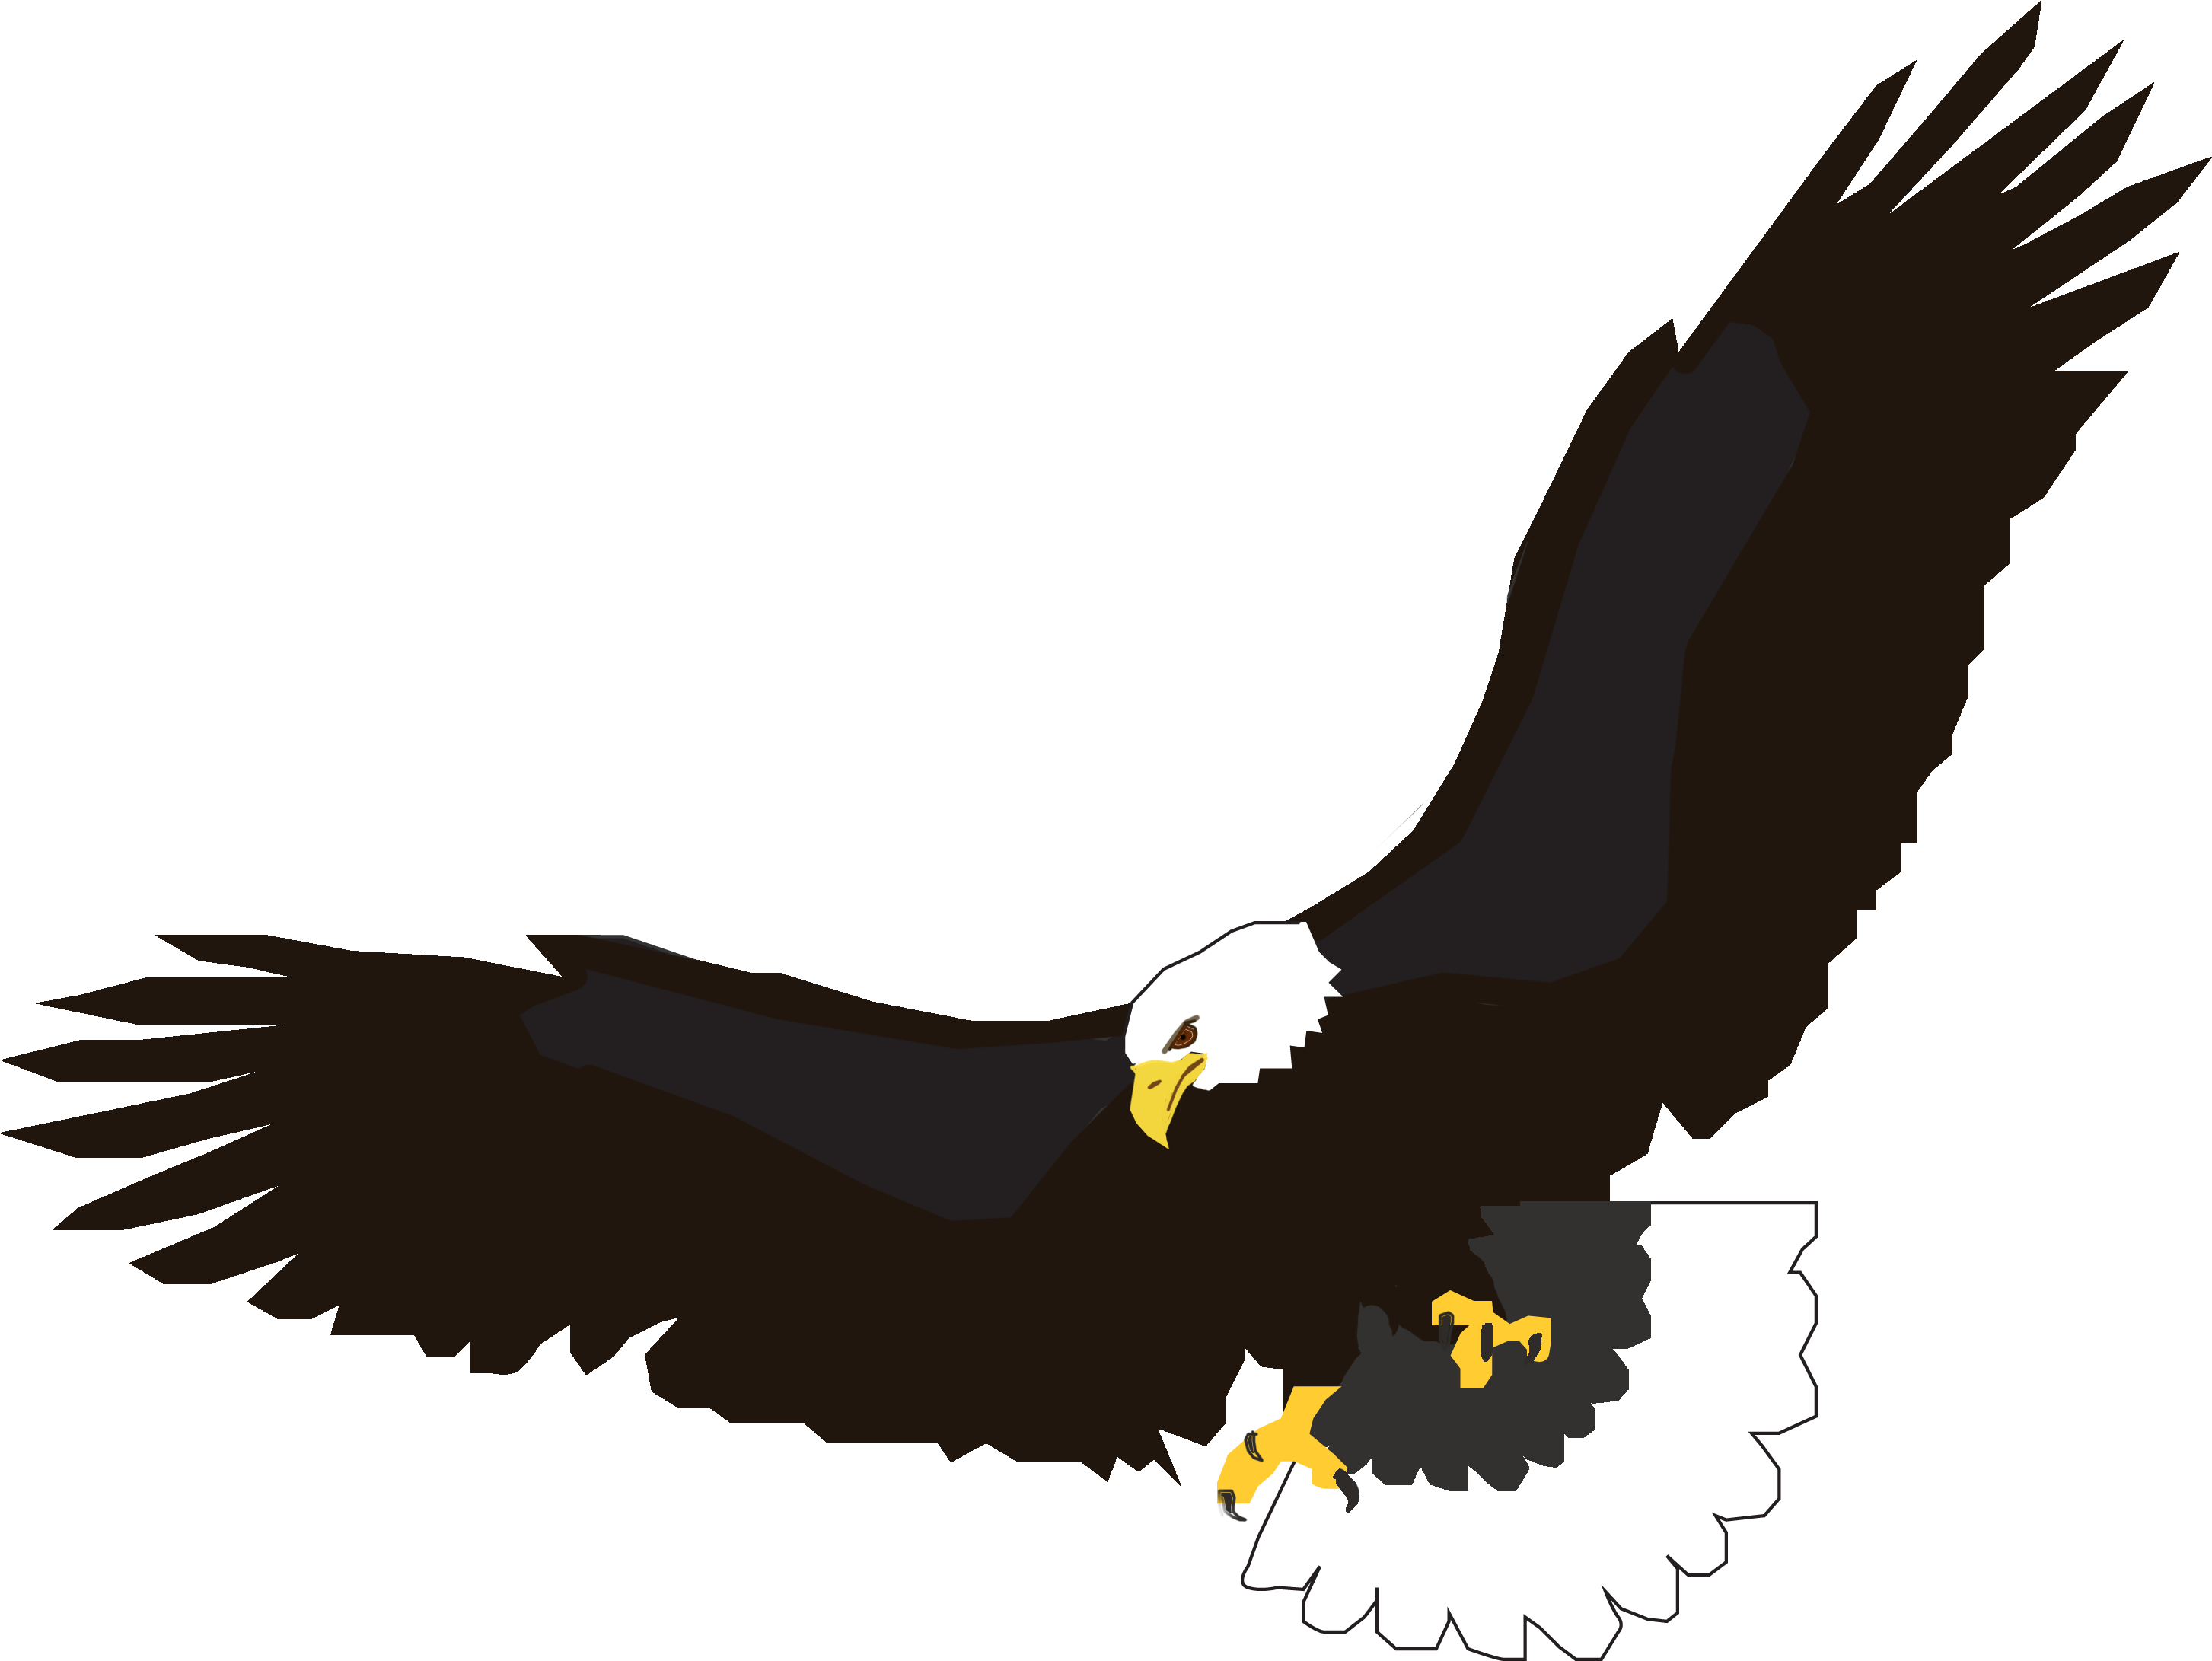 Eagle clipart diving. Eagles design six isolated